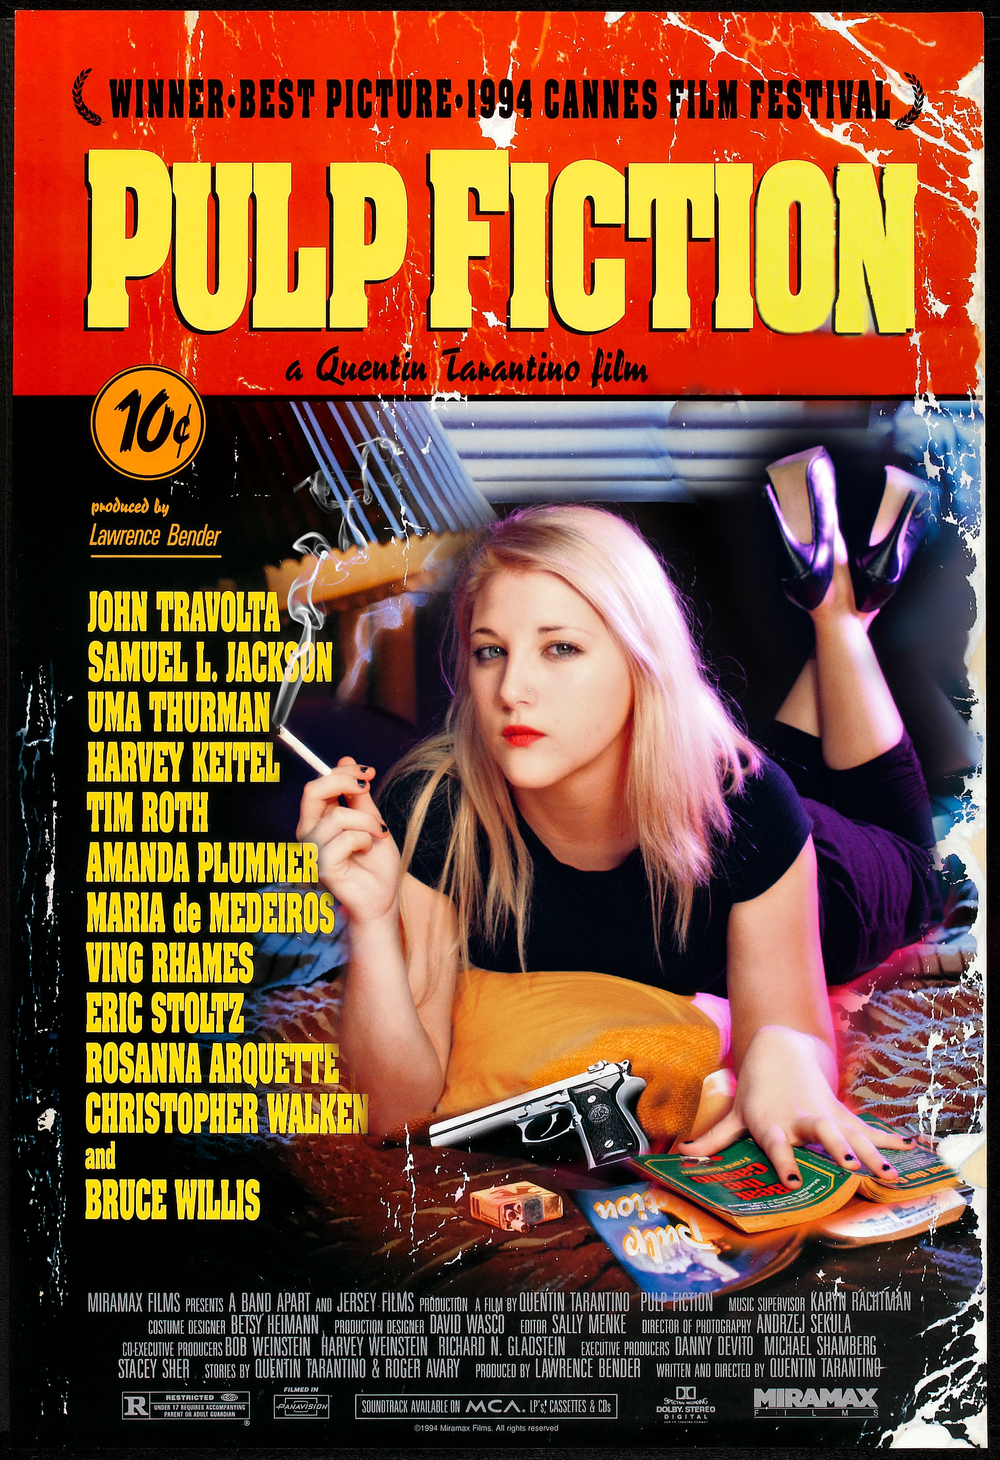 Pulp Fiction Re-Creation - December 2011